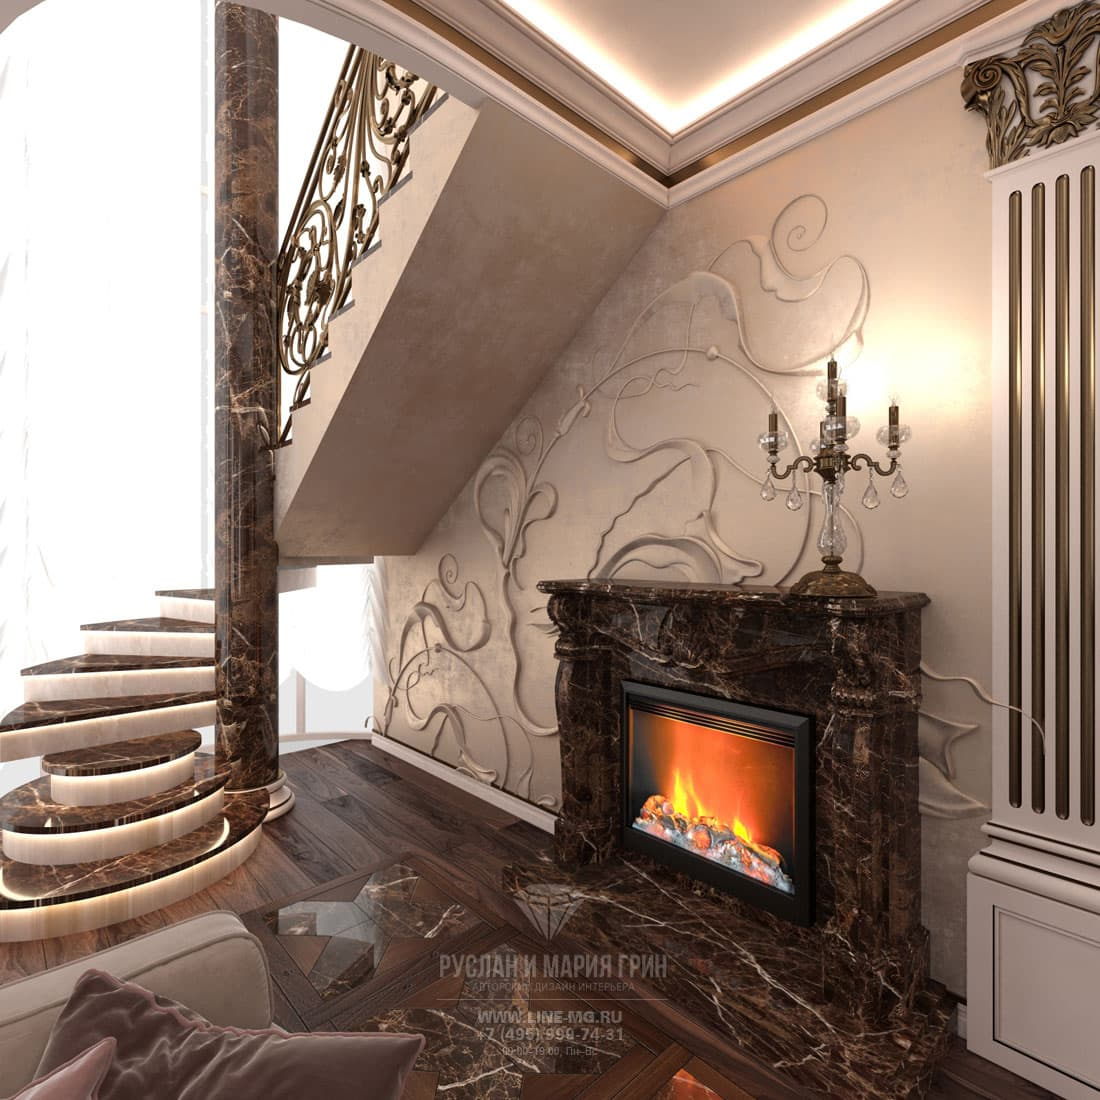 Stairs and fireplace area design of the living room